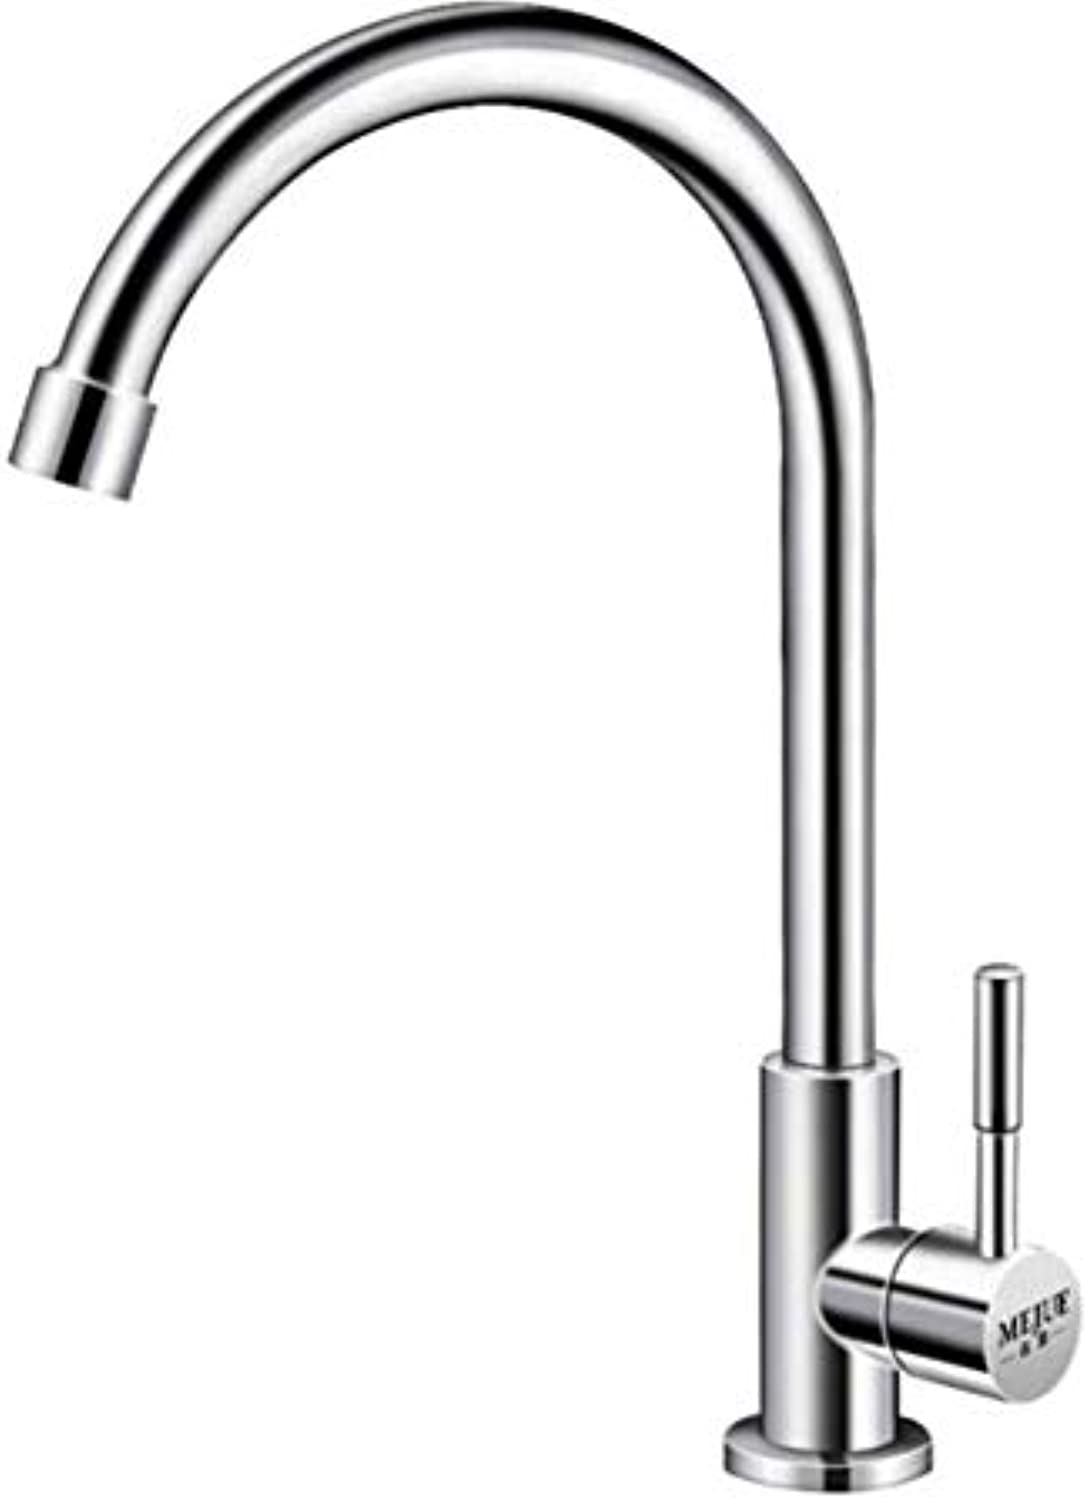 Single Handle Kitchen Sink Faucetarchlead-Free 304 Stainless Steel Kitchen Single Cold Faucet Sink Sink Sink Faucet